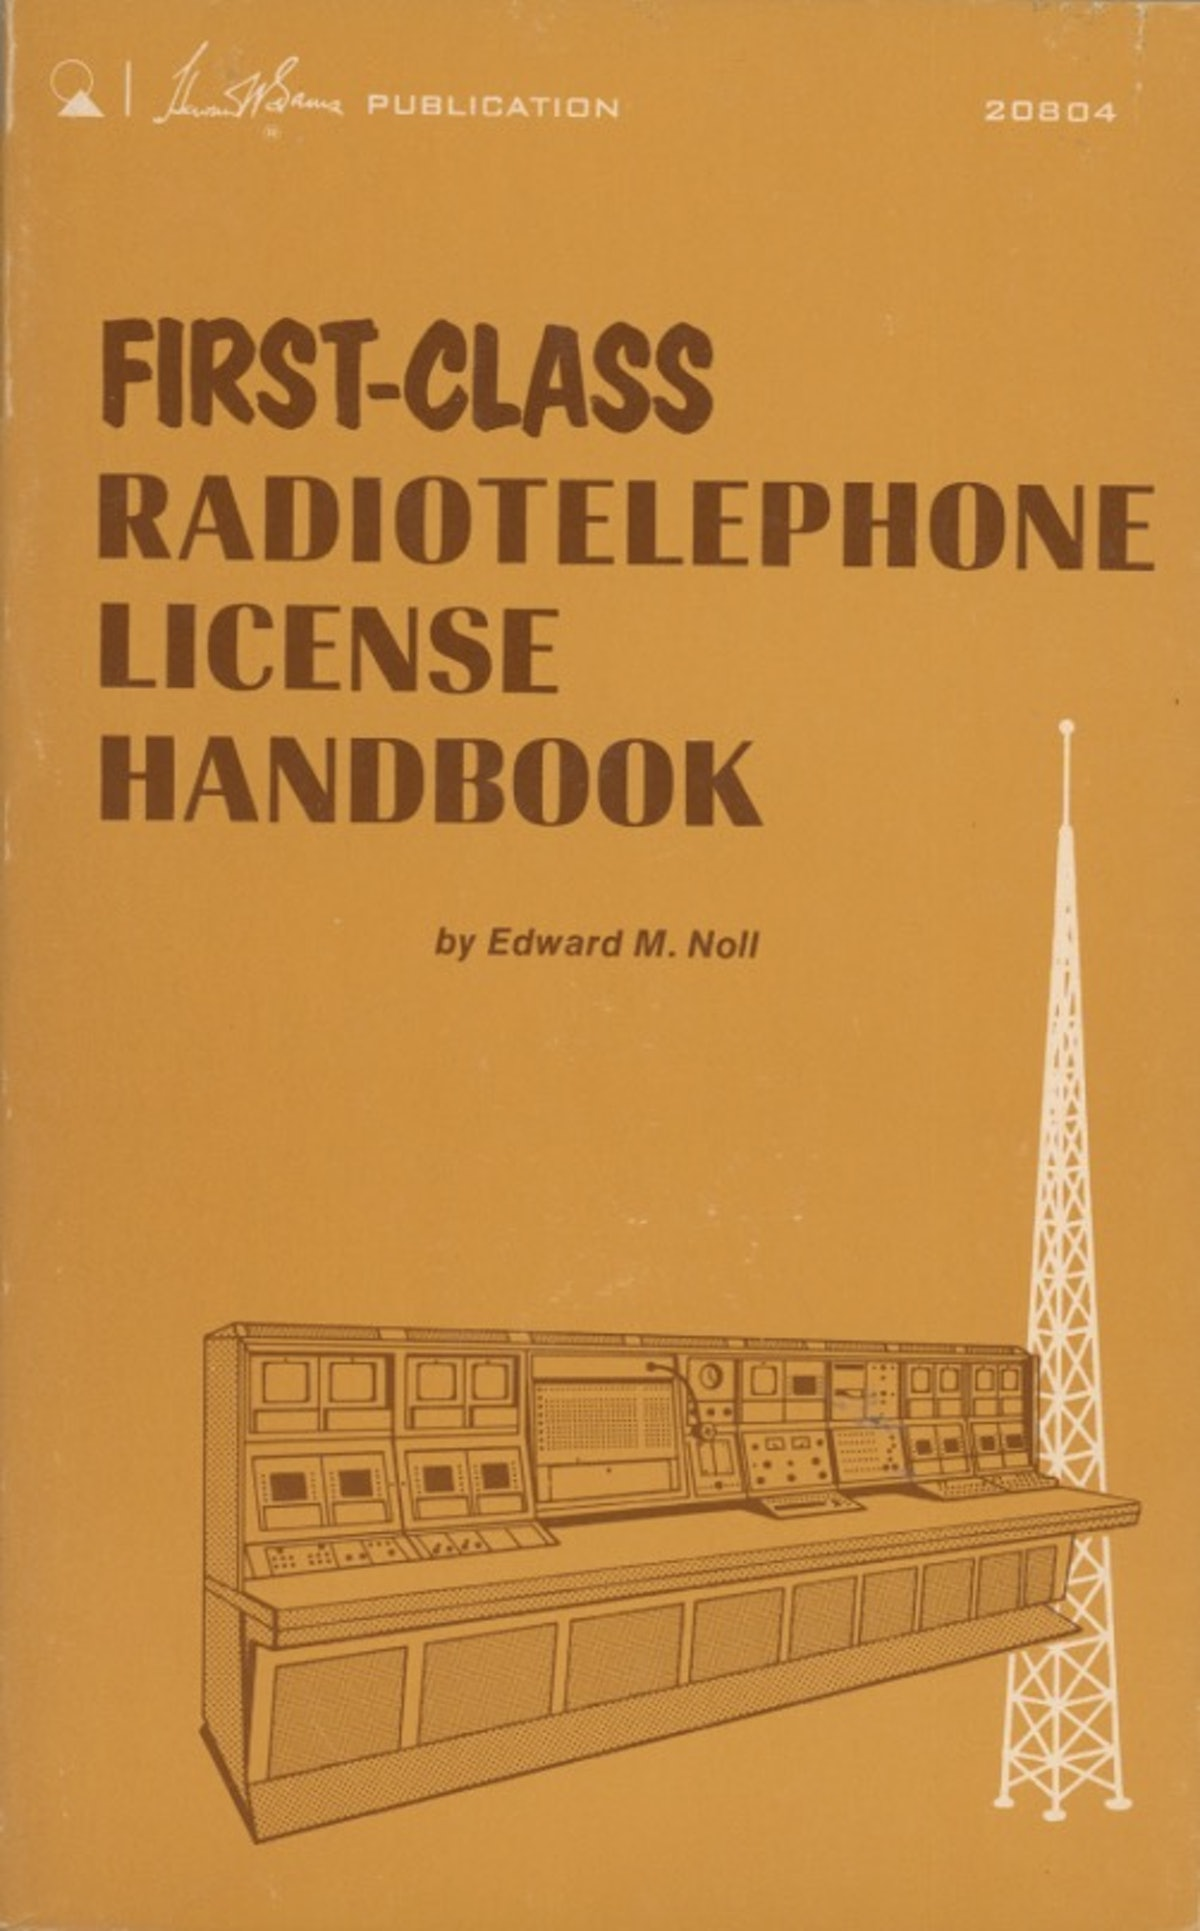 First-Class Radiotelephone License Handbook